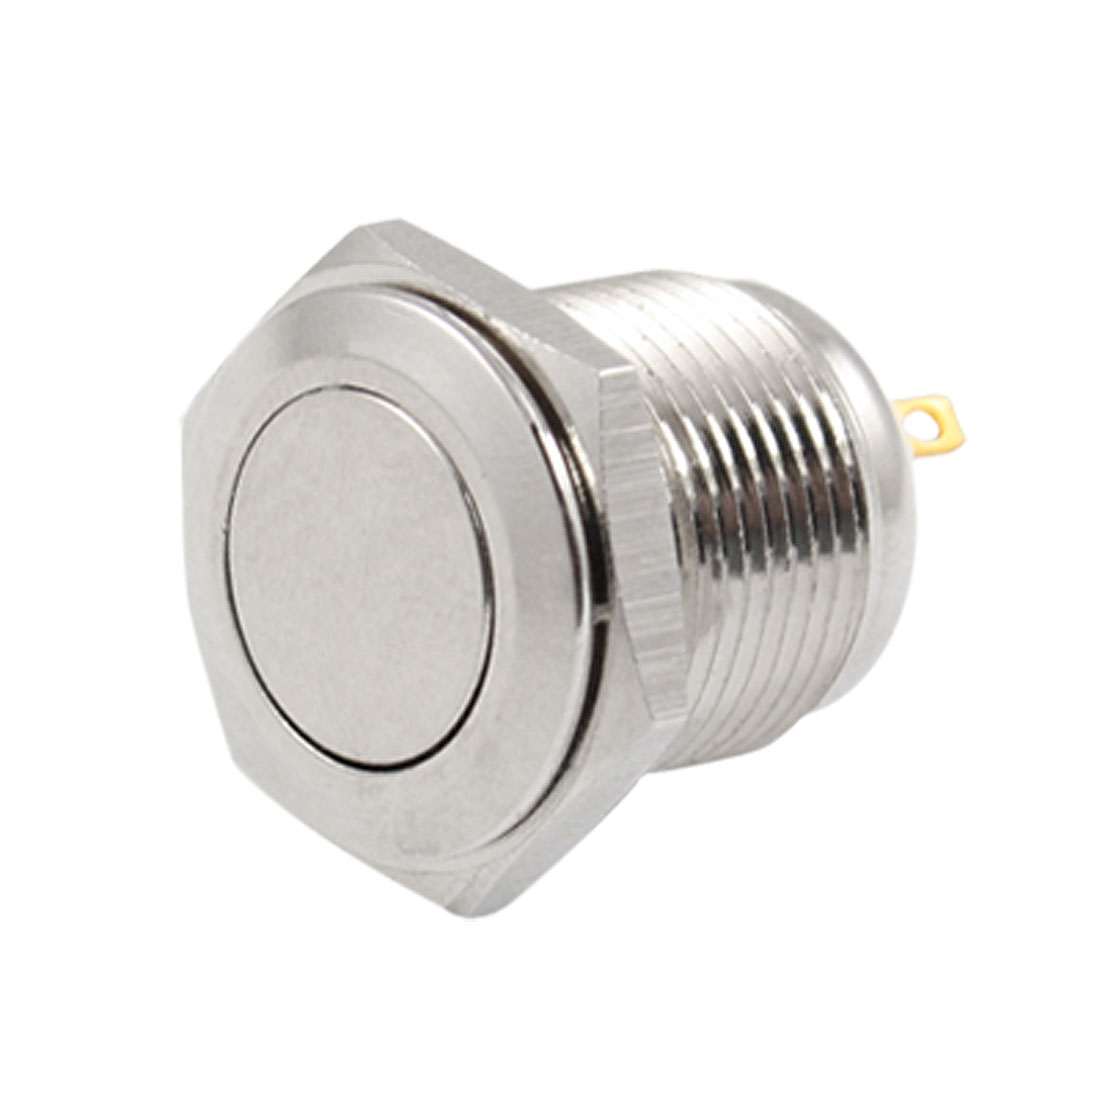 DC 36V 2A OFF-(ON) NO 16mm Metal Round Momentary Push Button Switch Flat Head